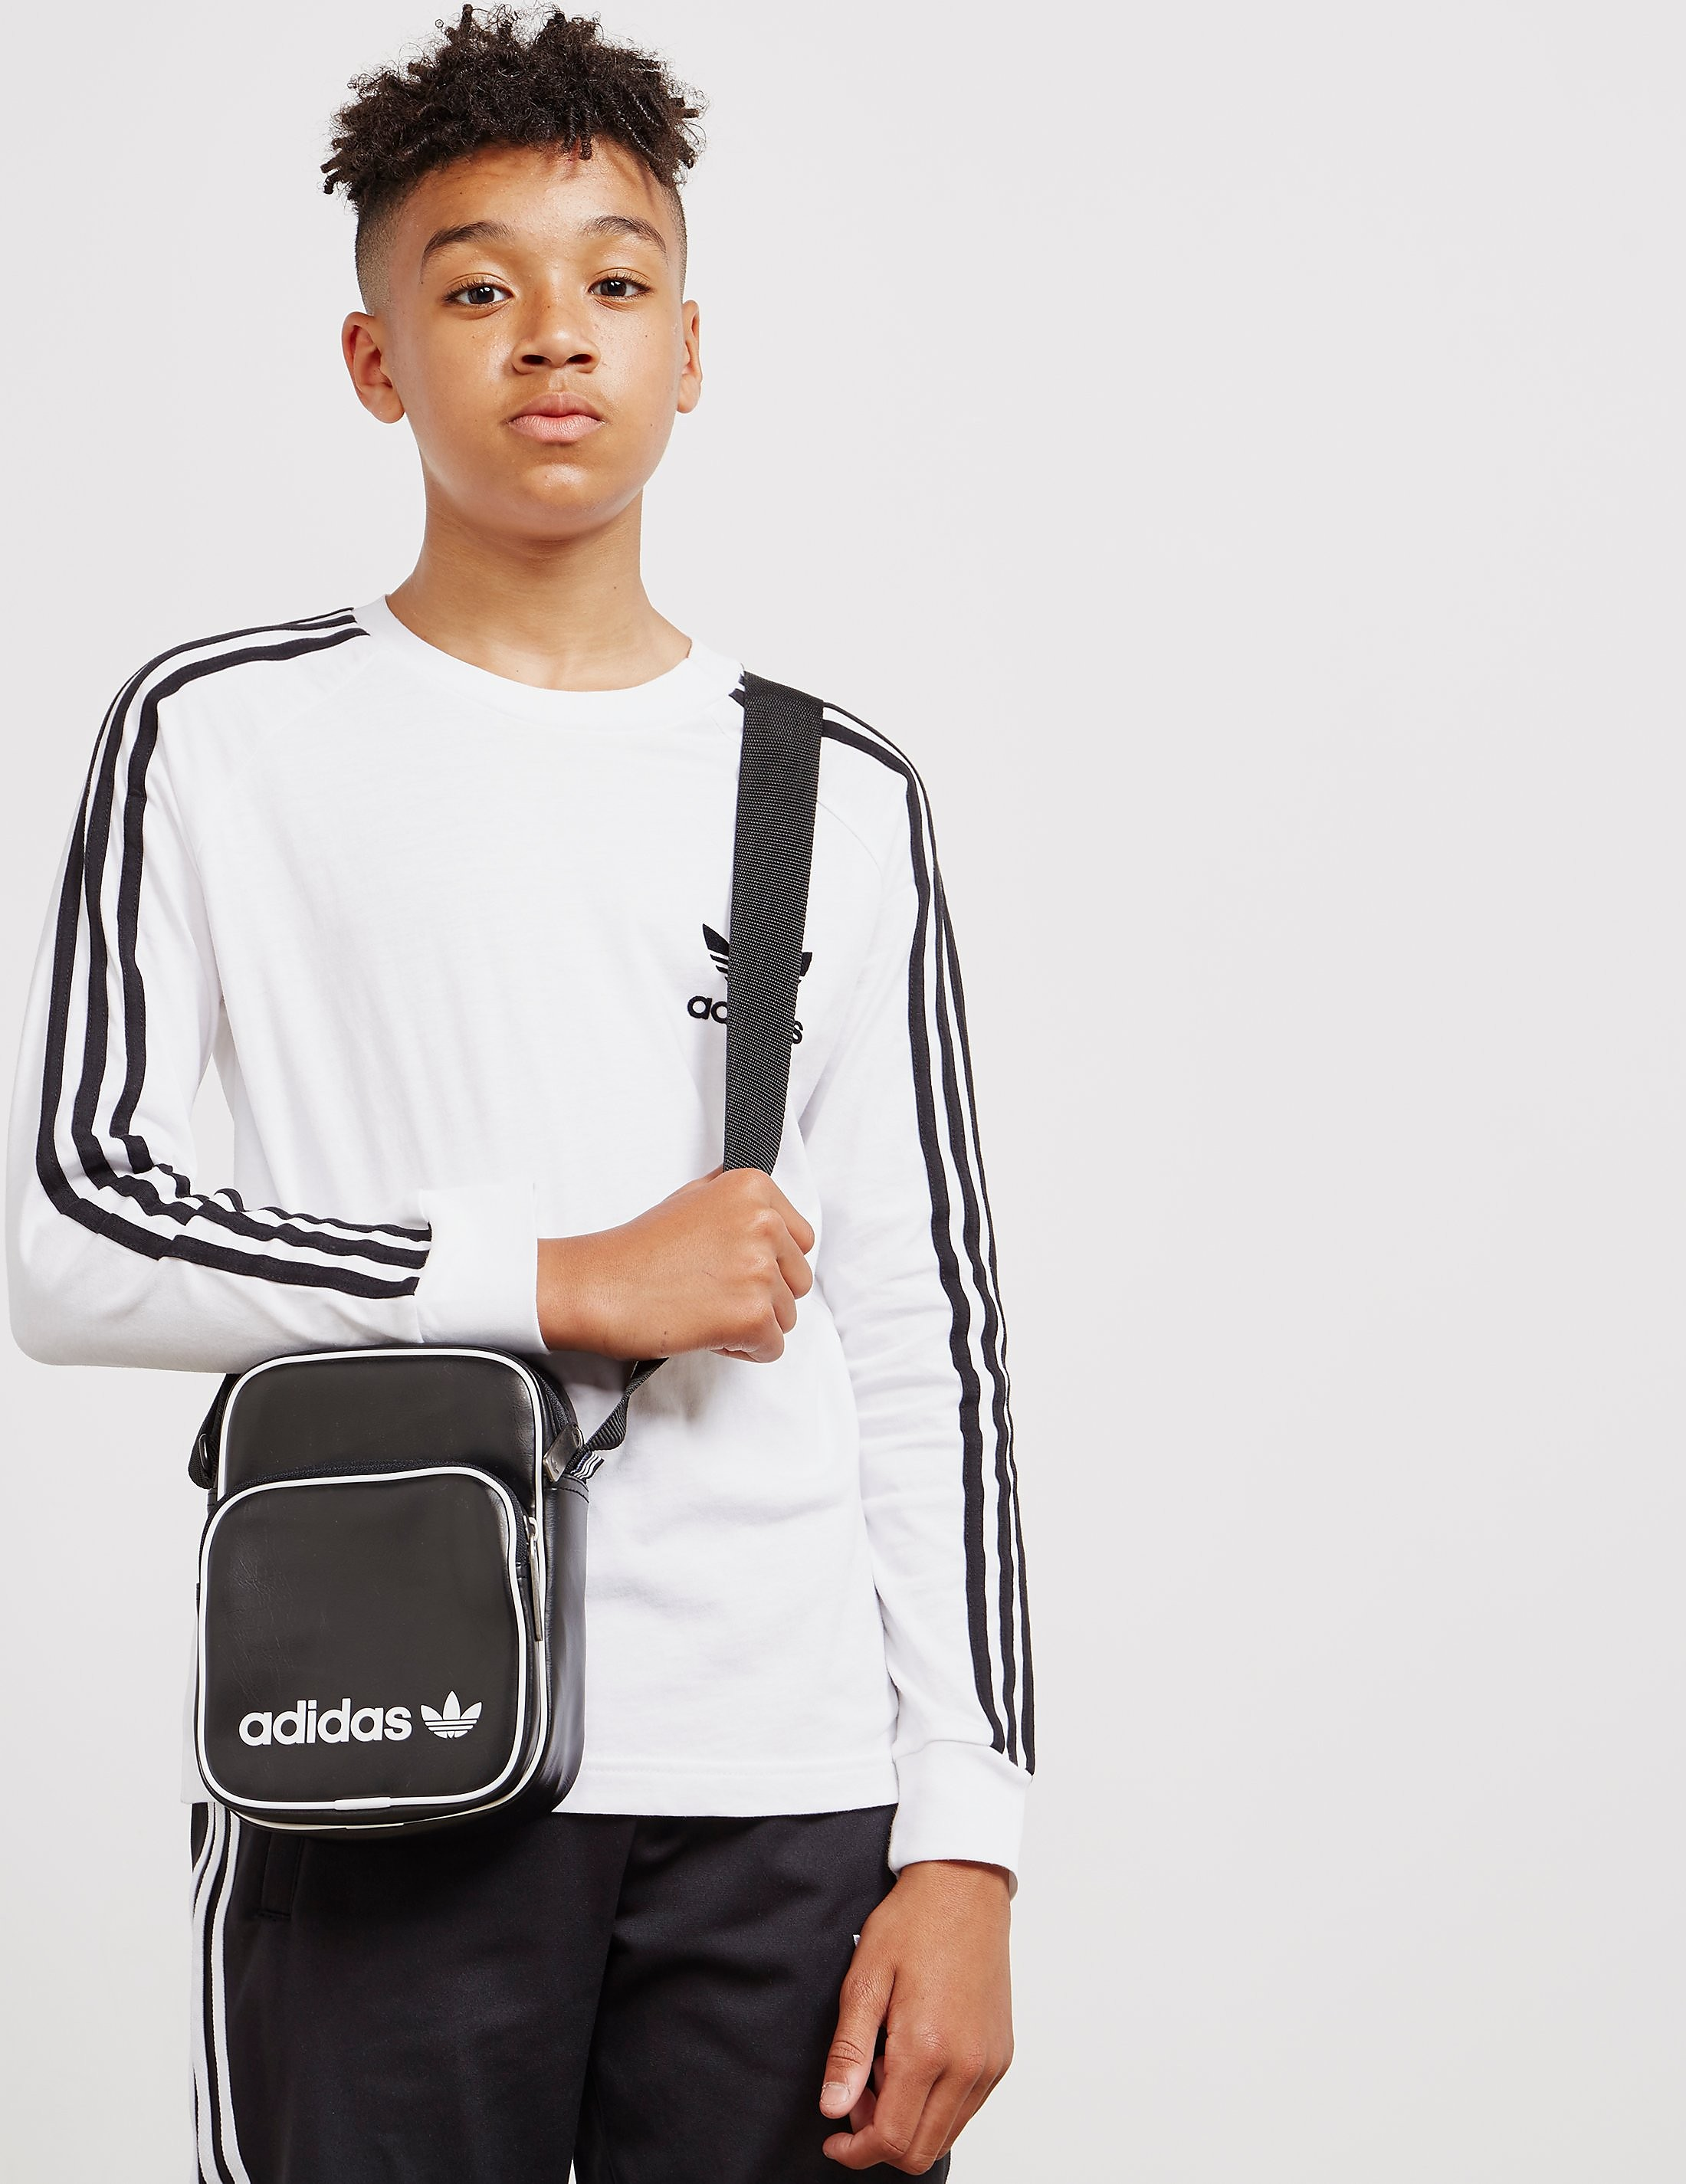 adidas Originals Mini Bag Vintage